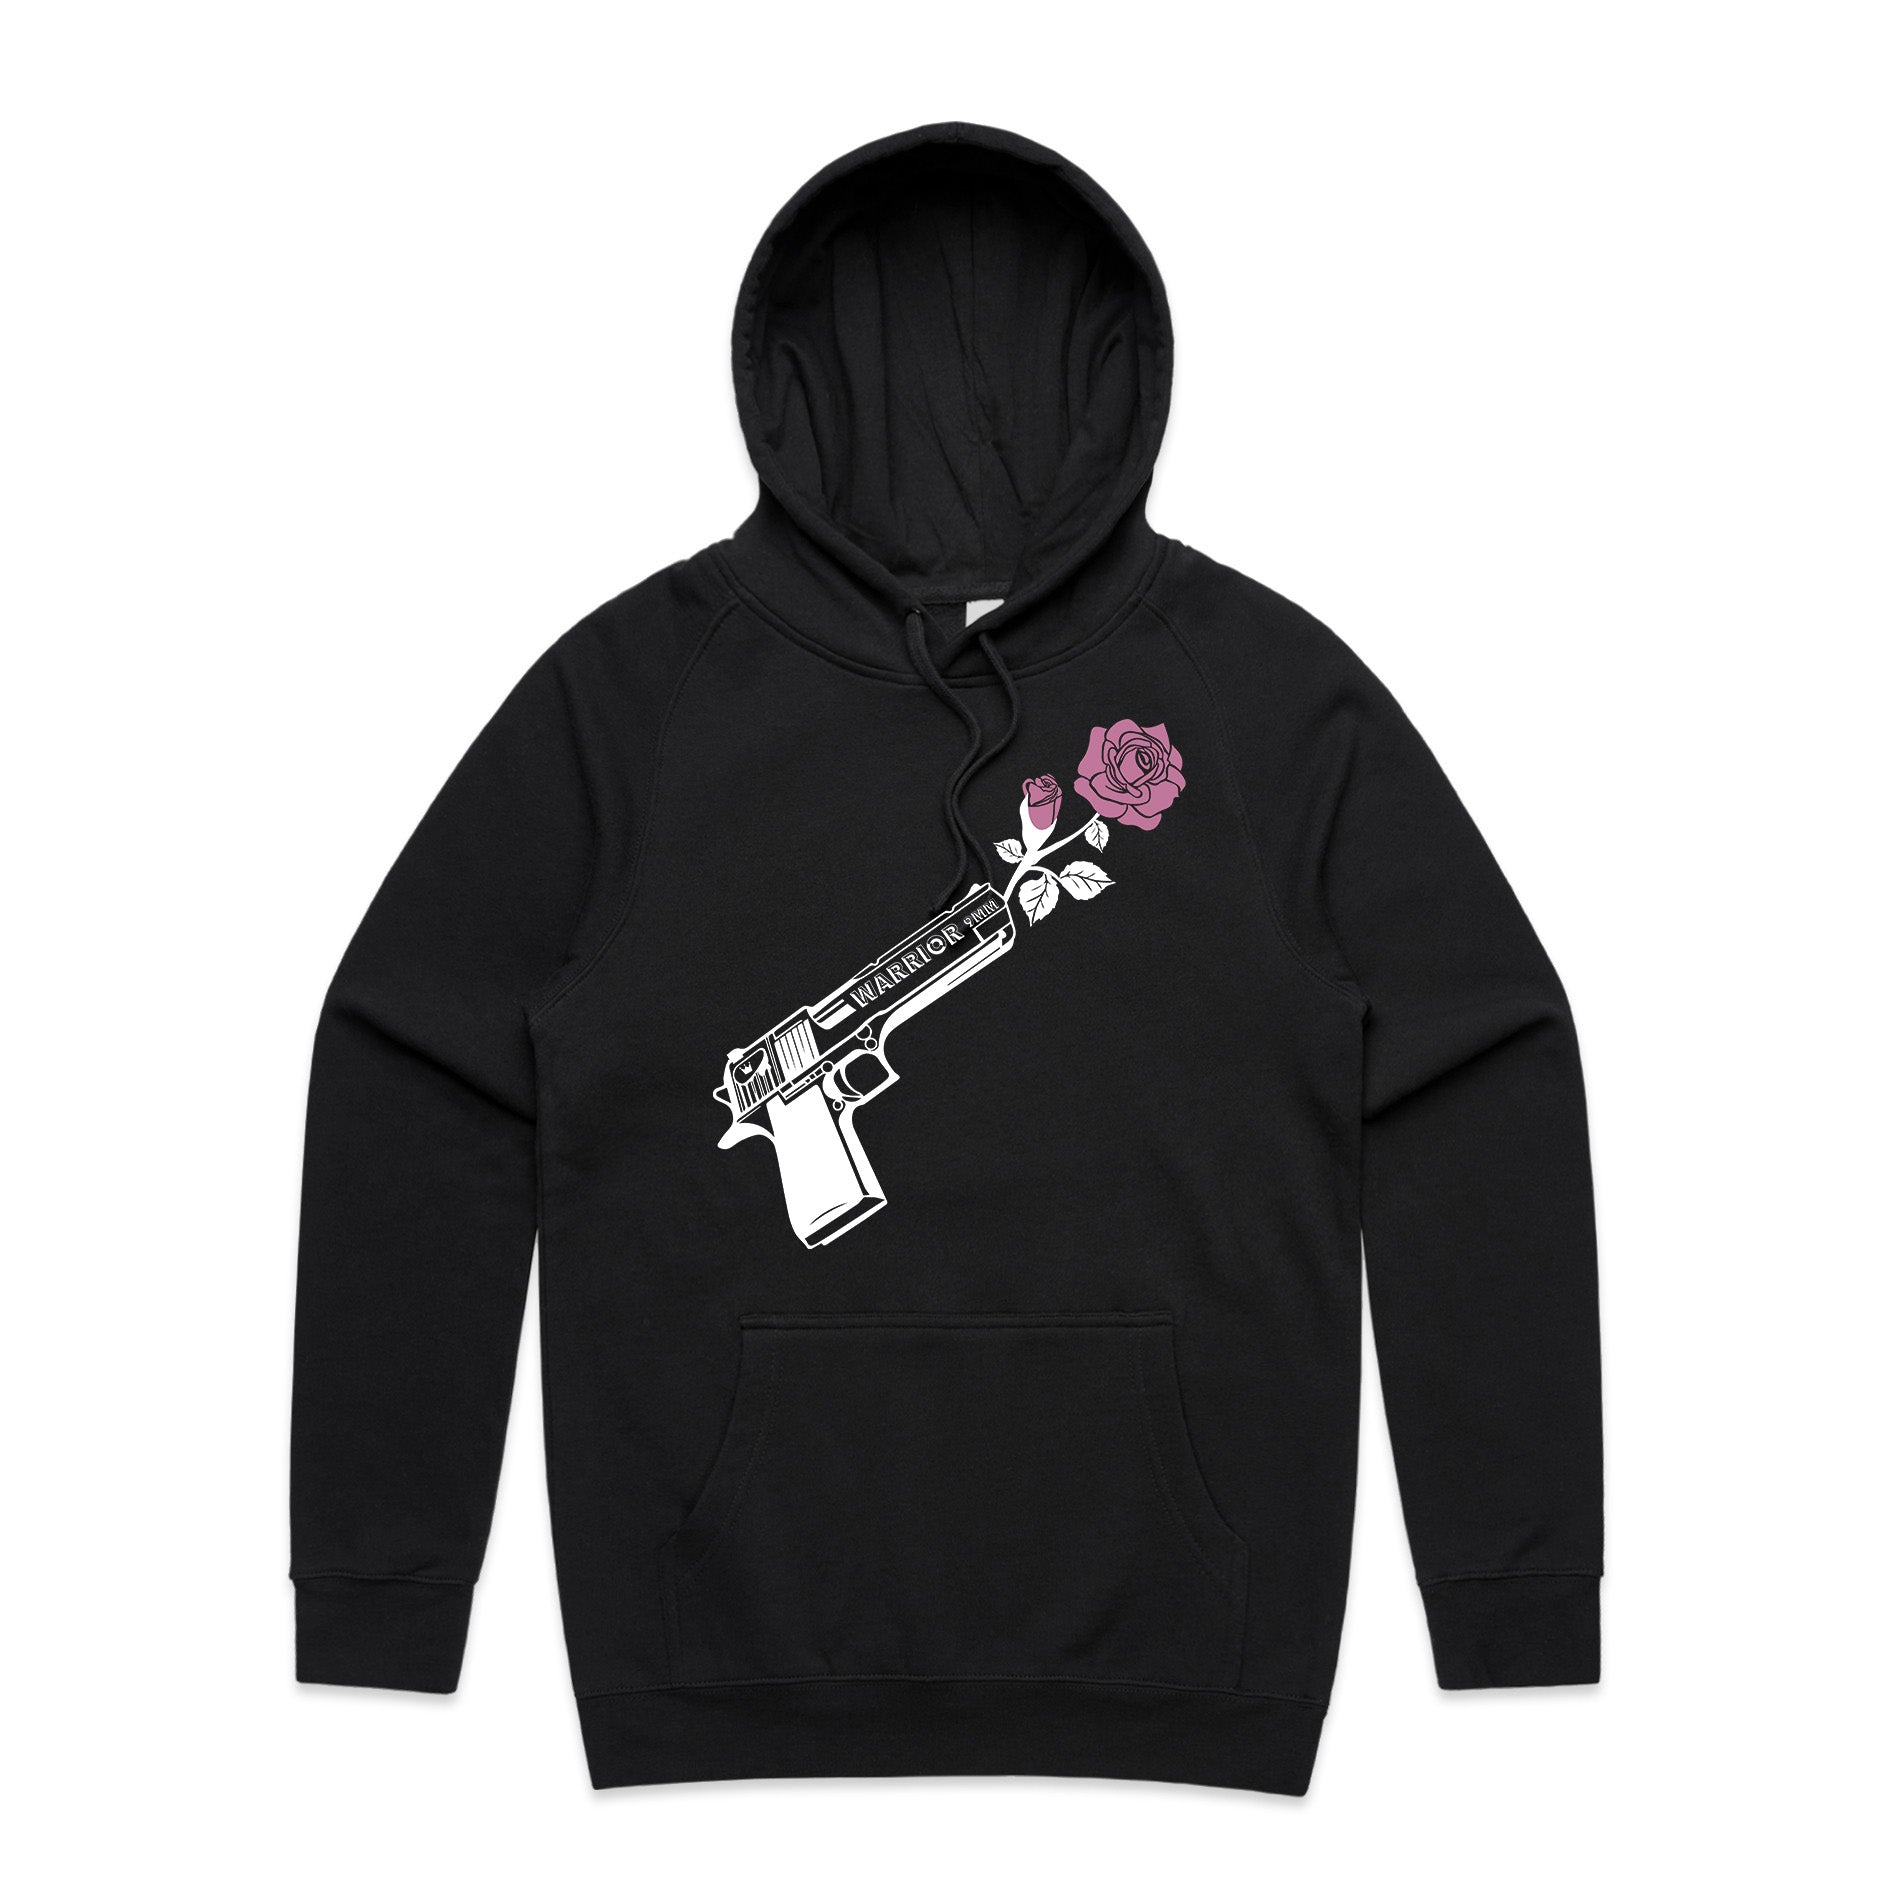 'Through Darkness She Blooms' Hoodie Pink Rose